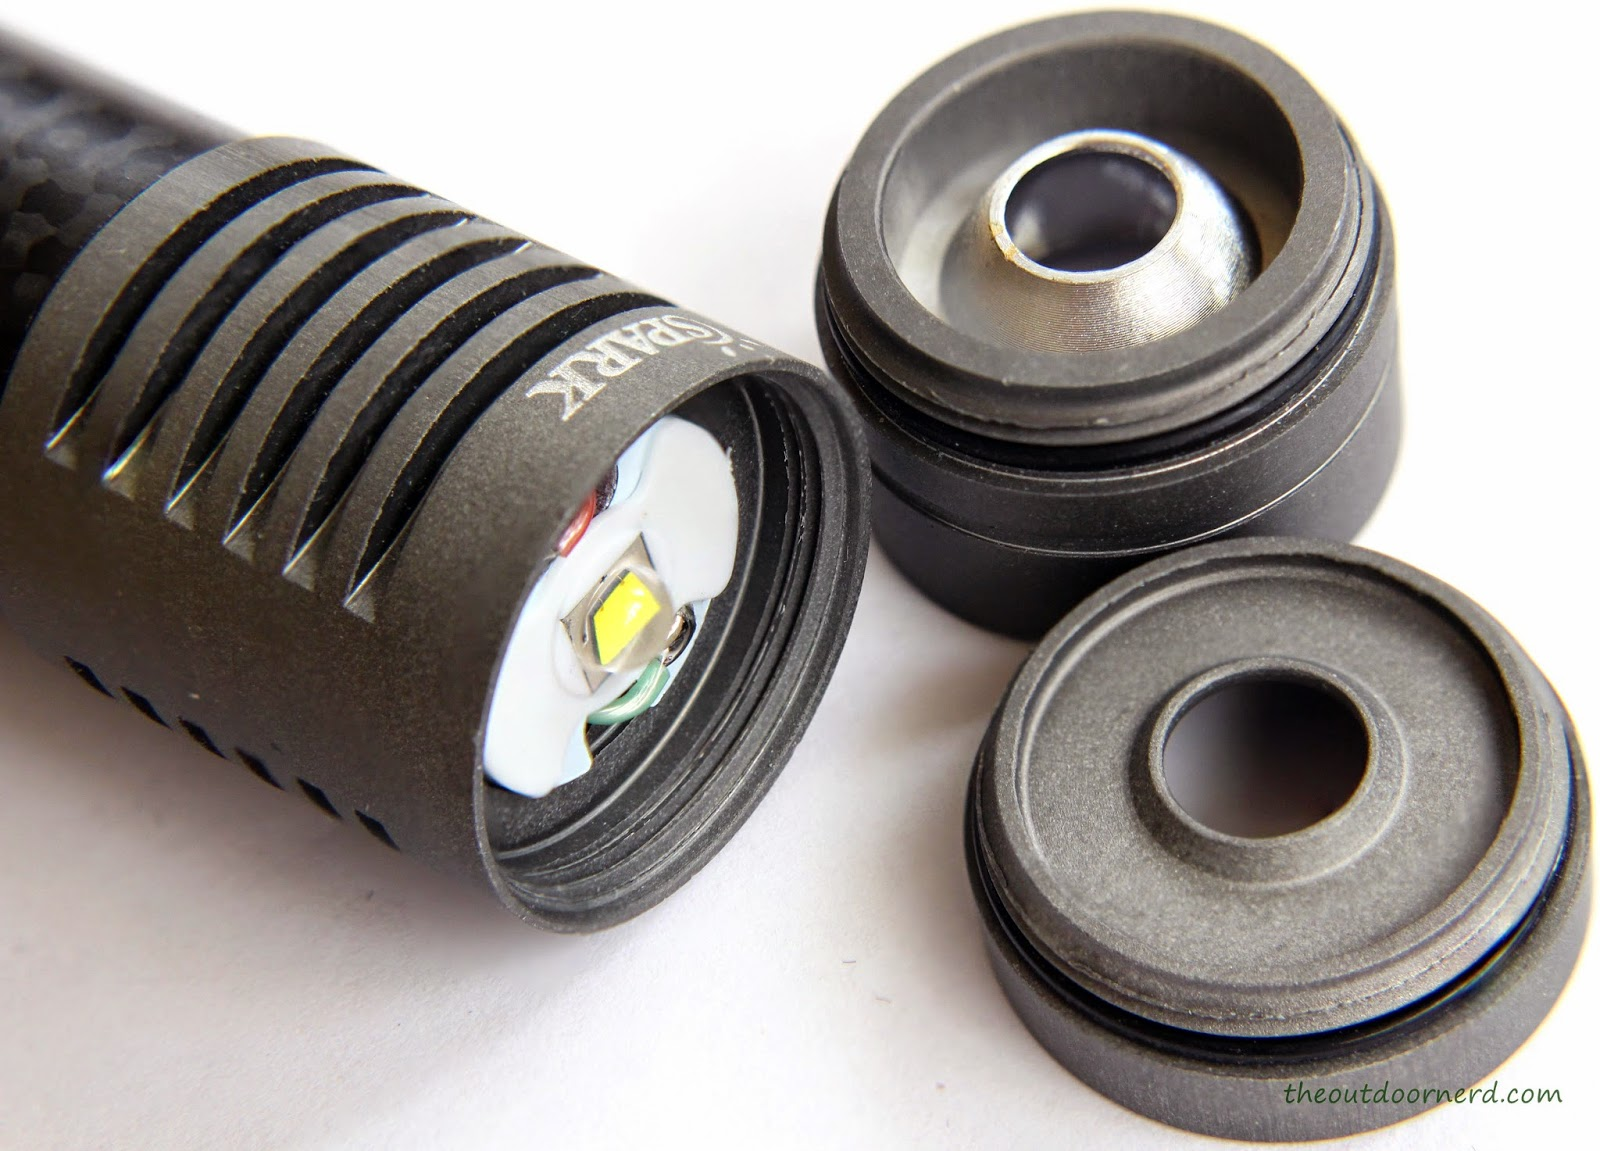 Spark SF3 1xCR123A Flashlight - Shown With Both Reflectors